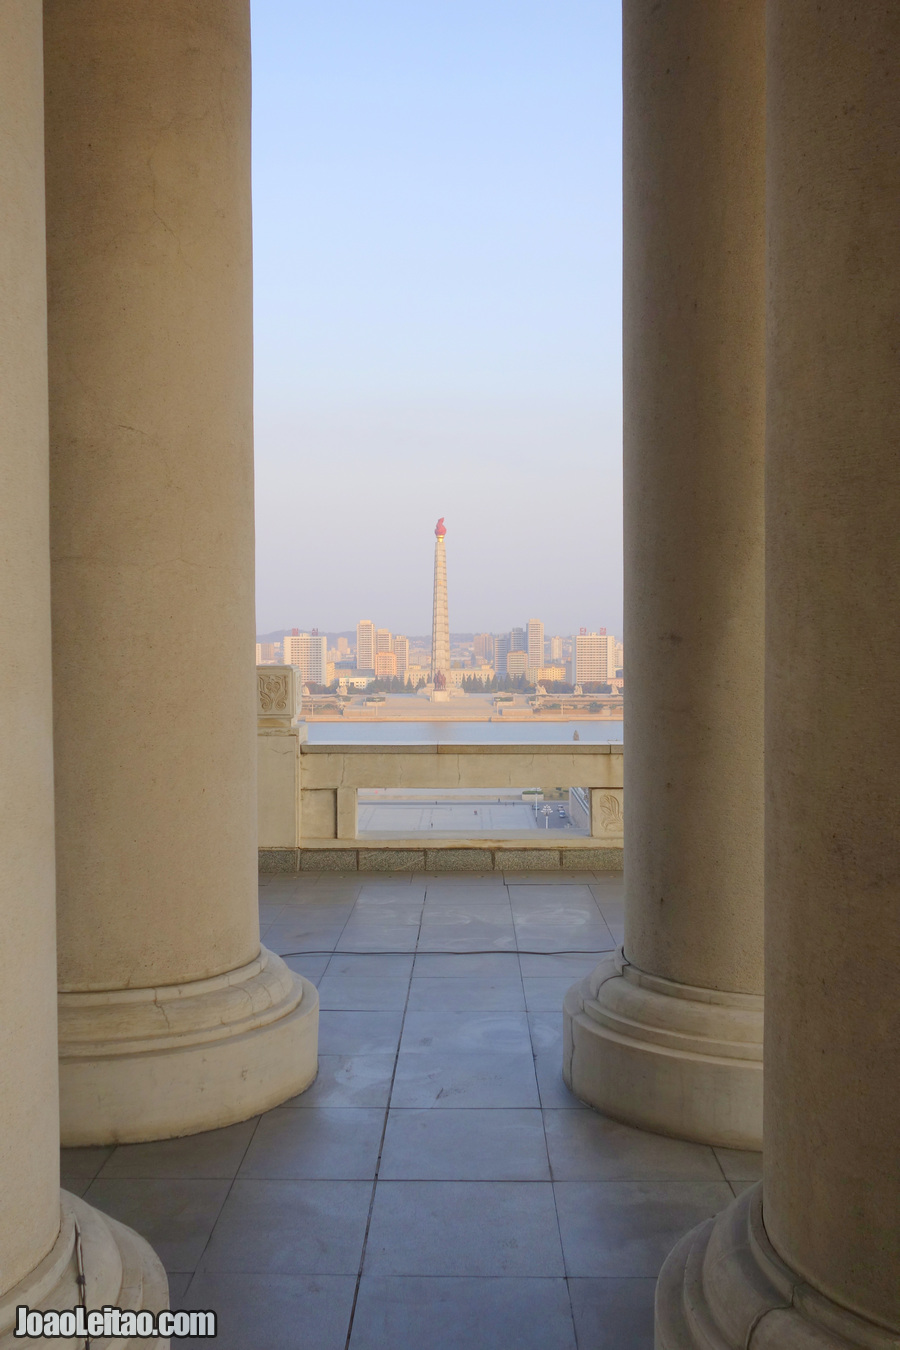 Juche Tower seen from the Grand People's Study House